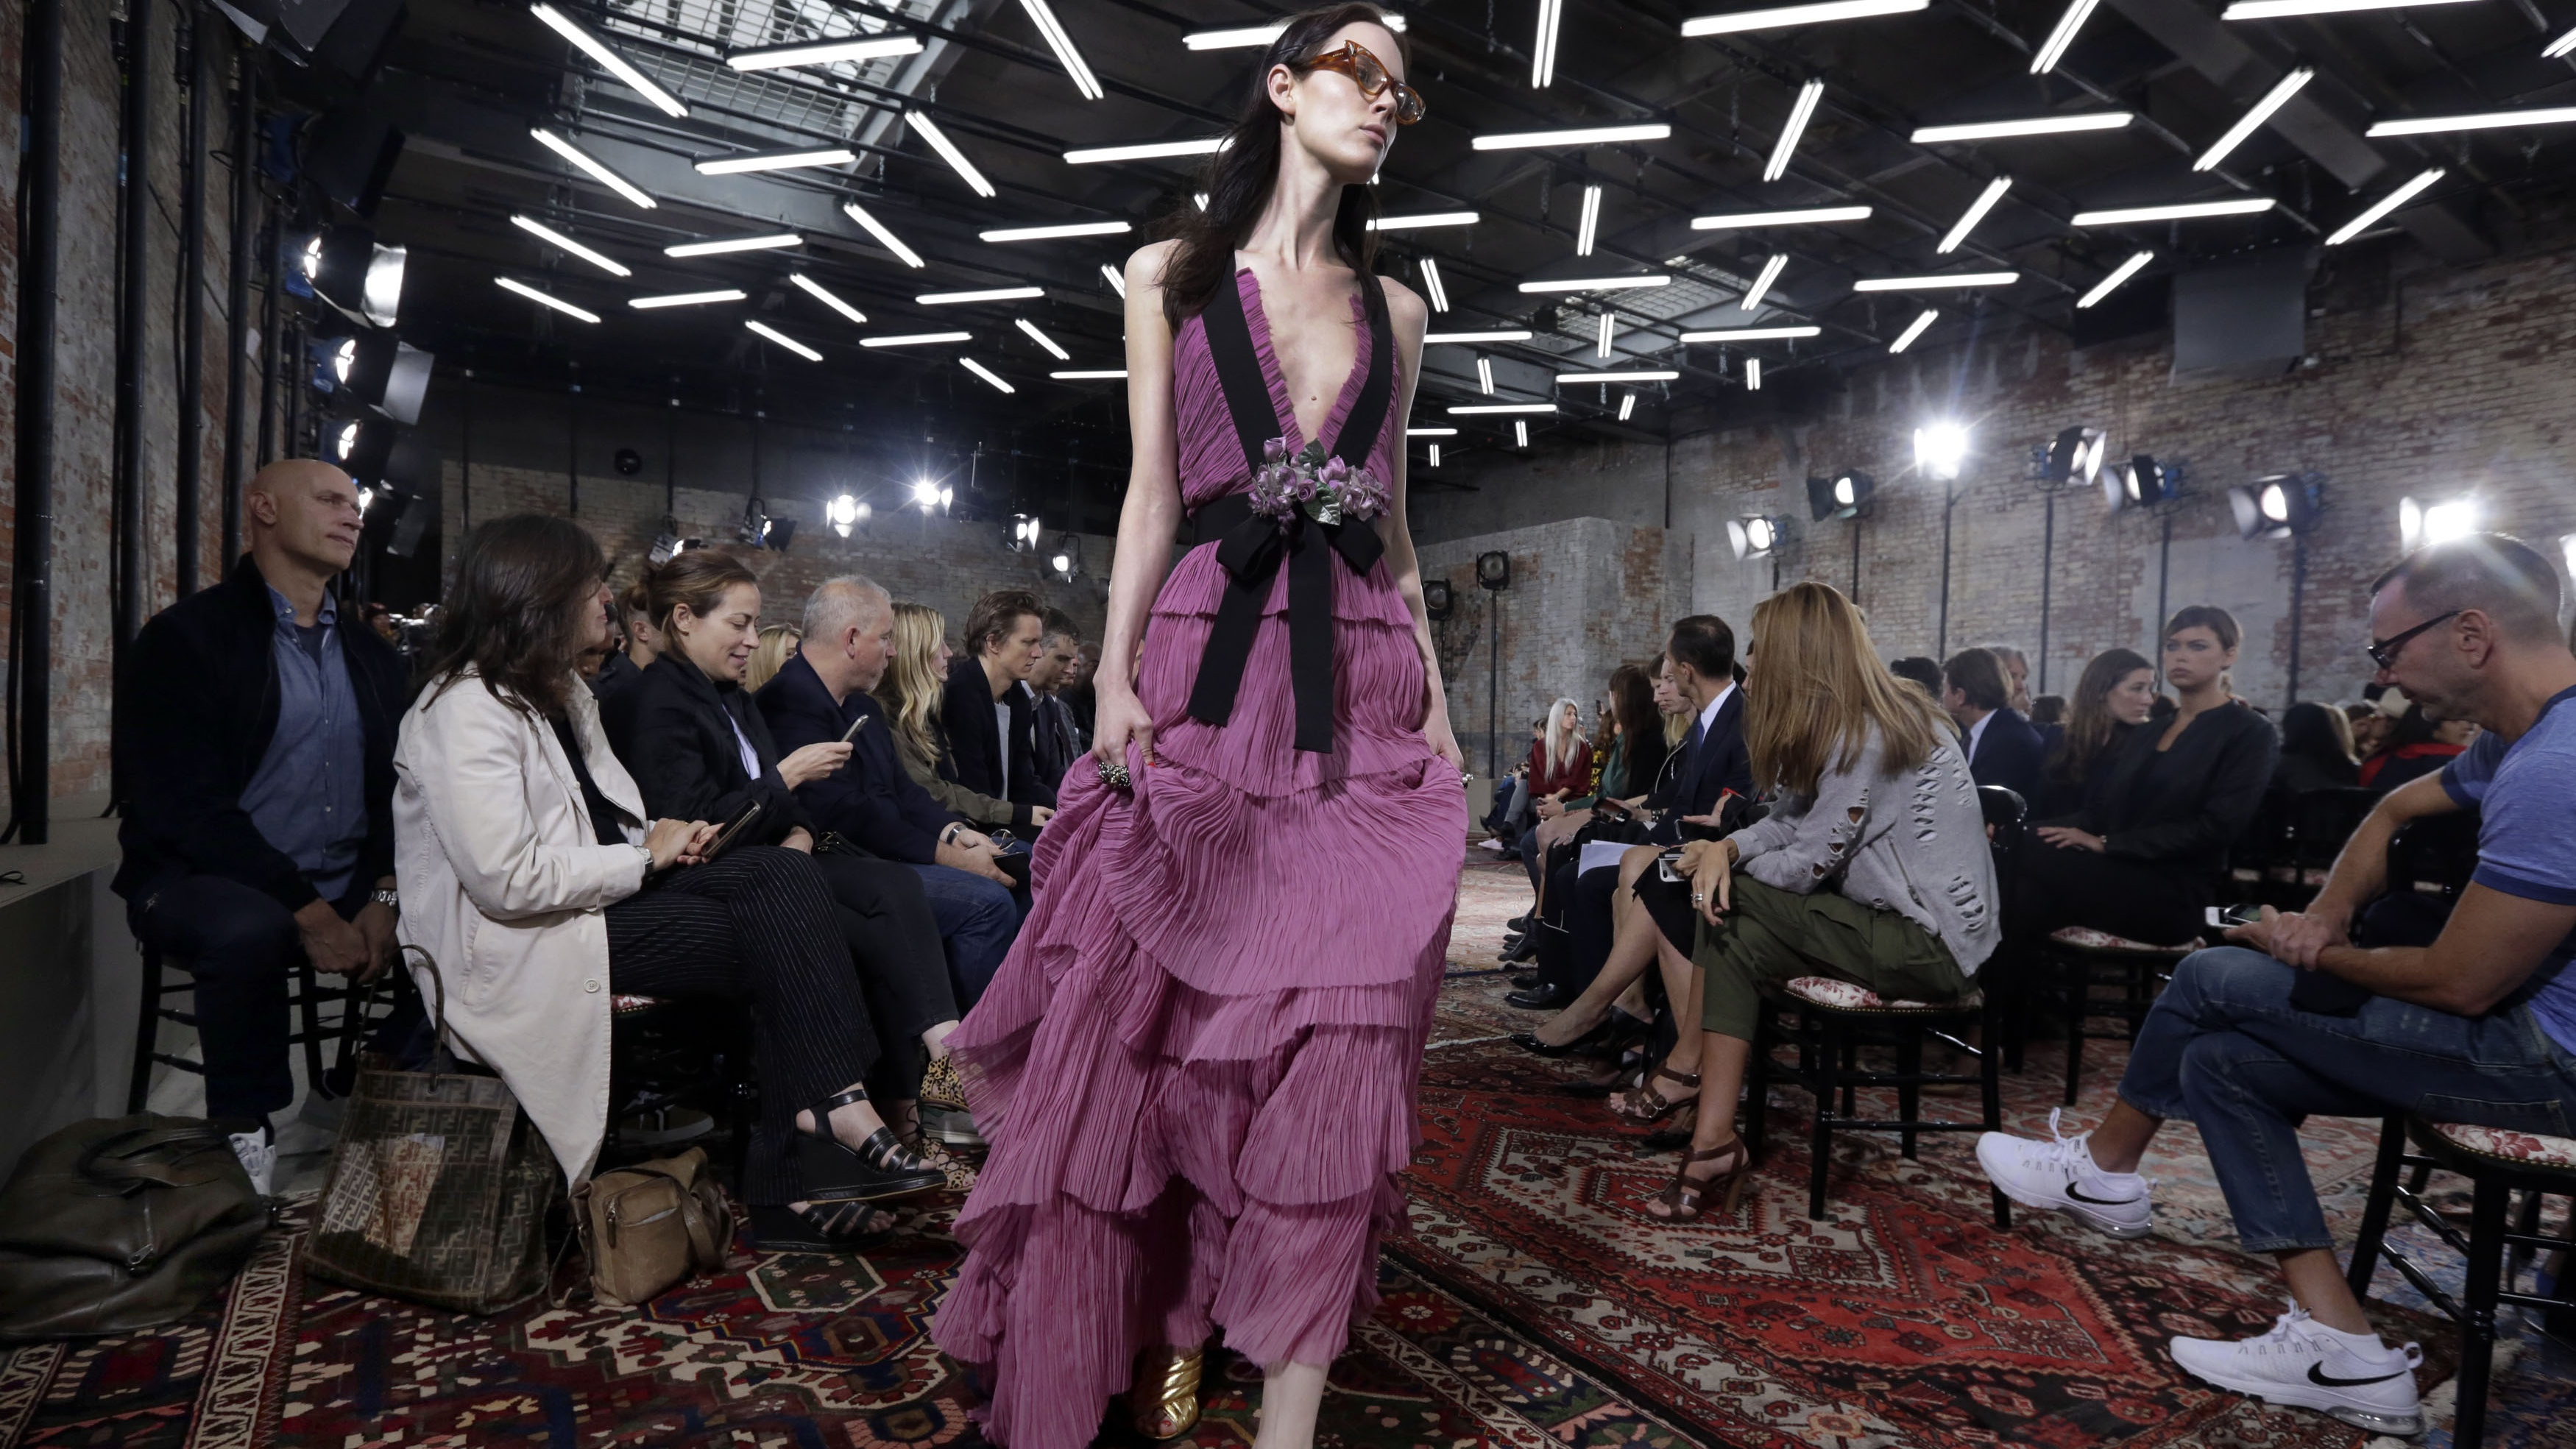 The Gucci cruise wear collection is modeled in New York, Thursday, June 4, 2015. Gucci's new creative director Alessandro Michele put on a whimsical, eclectic show Thursday for his first resort collection.